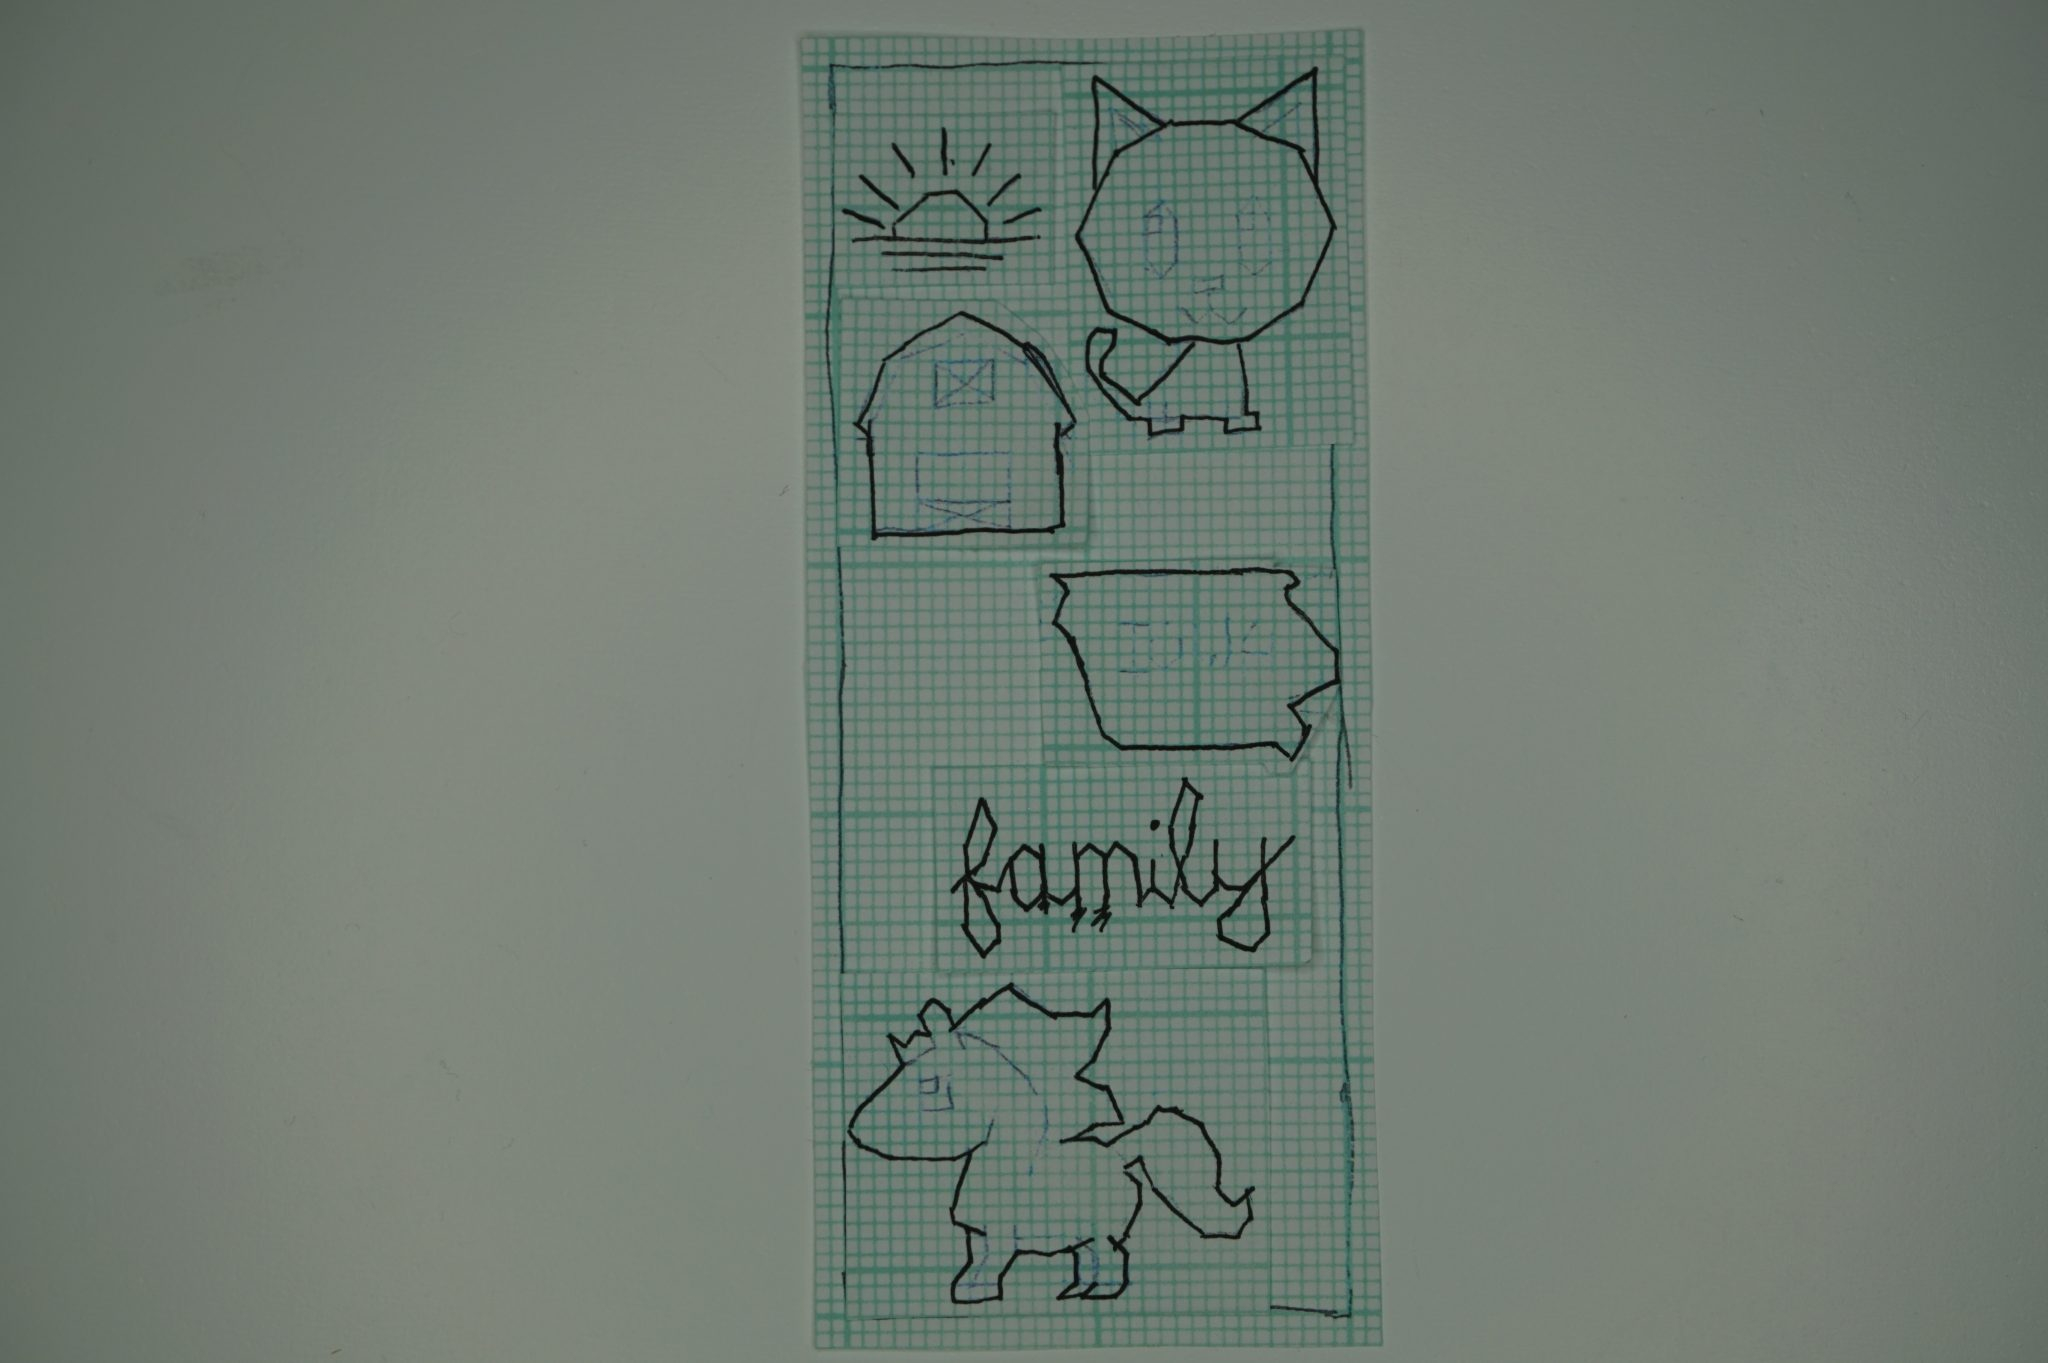 How To Make Your Own Embroidery Pattern Make Your Own Simple Outlines For Embroiderycross Stitch Thread